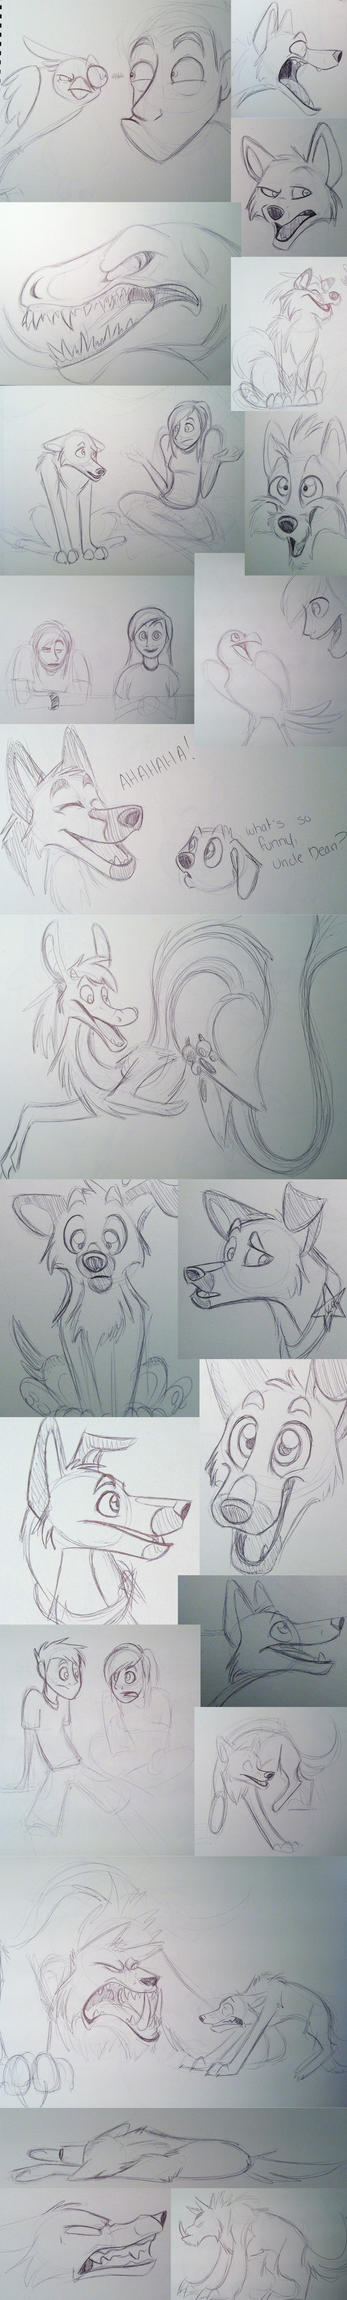 Airplane Doodles by bmbbaby4